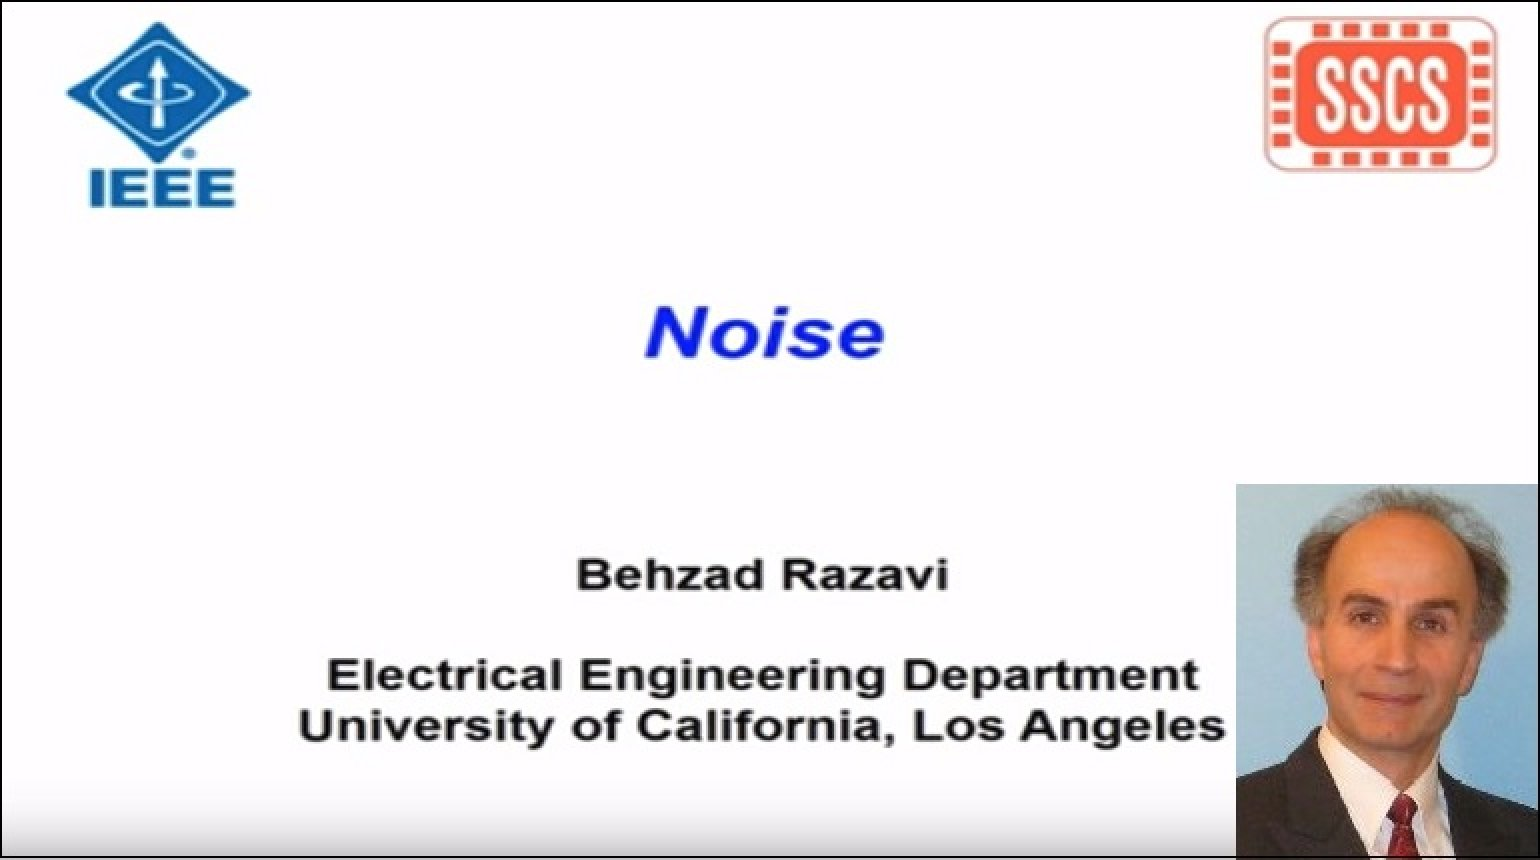 Noise: Lecture 5 - Introduction to Low-Noise Design�Video